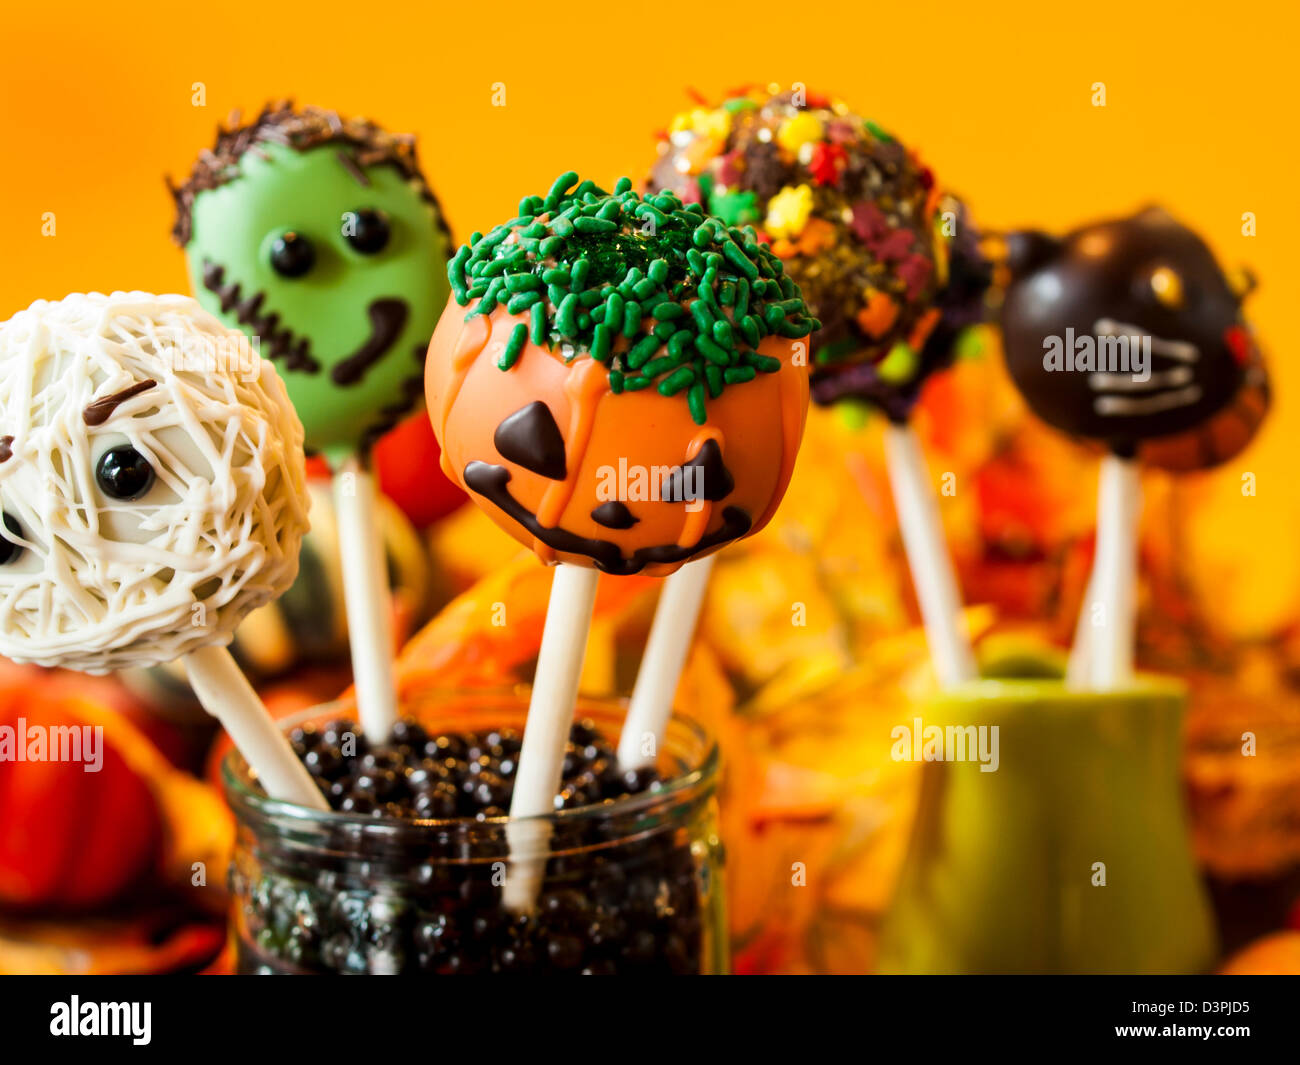 halloween cake pops stock photos & halloween cake pops stock images